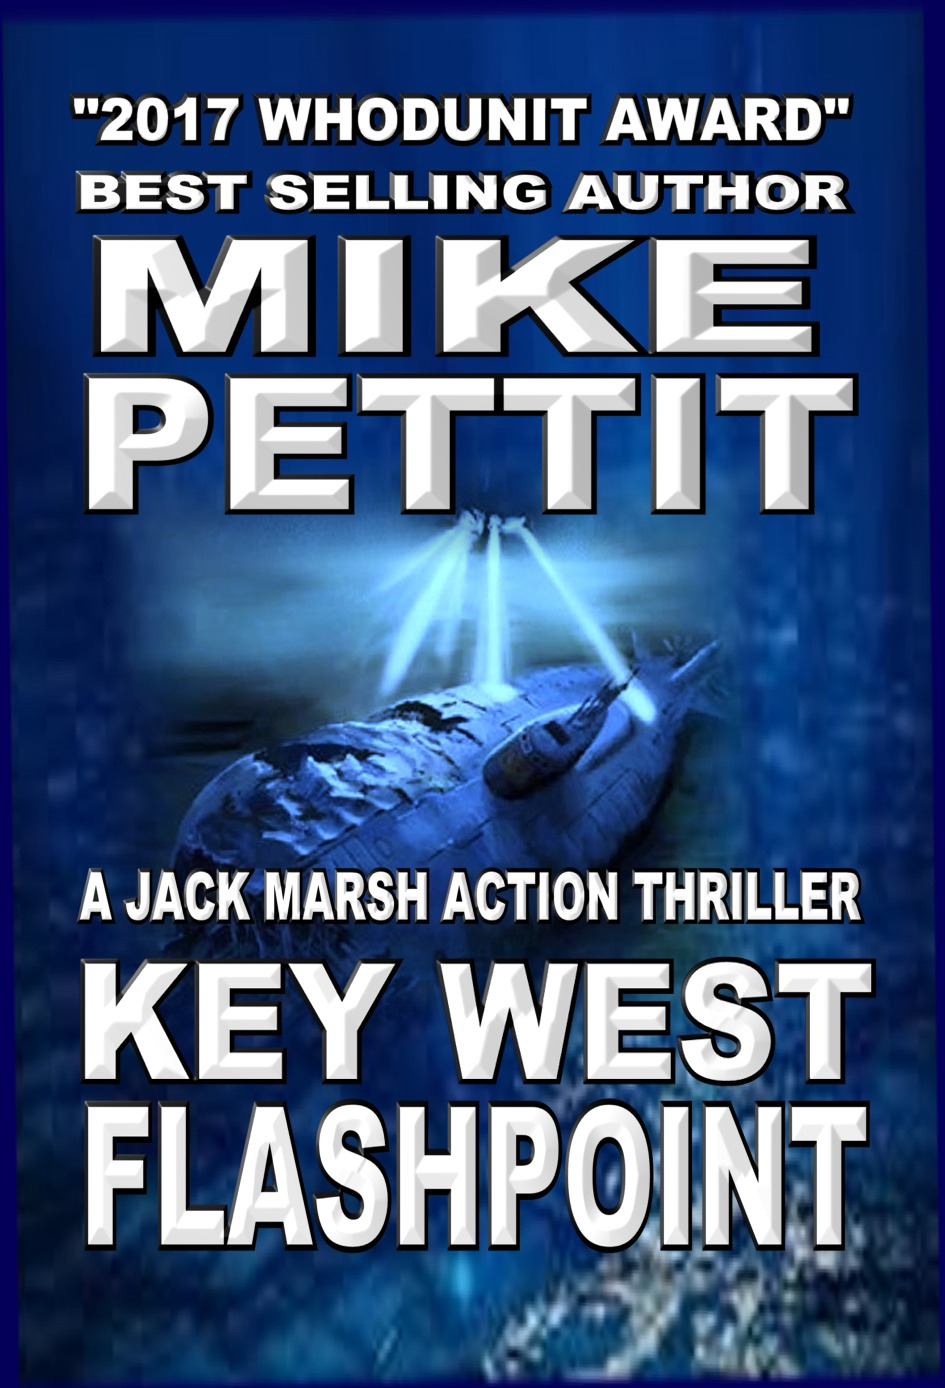 KEY WEST FLASHPOINT